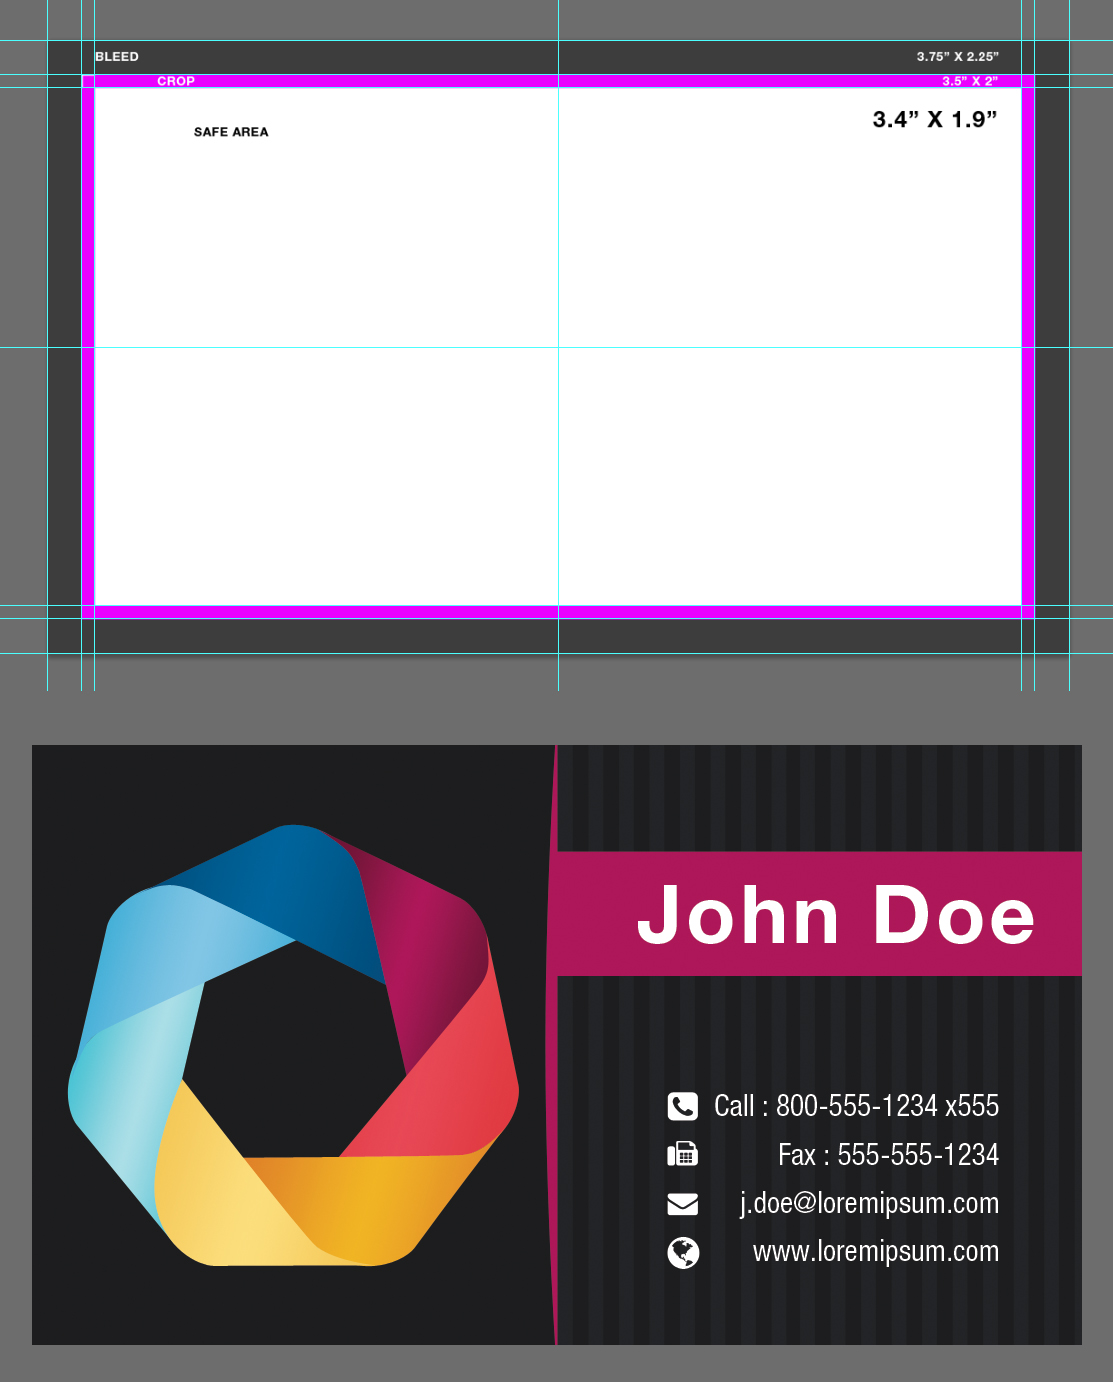 Blank business card template PSD by xxdigipxx on DeviantArt – Blank Business Card Template